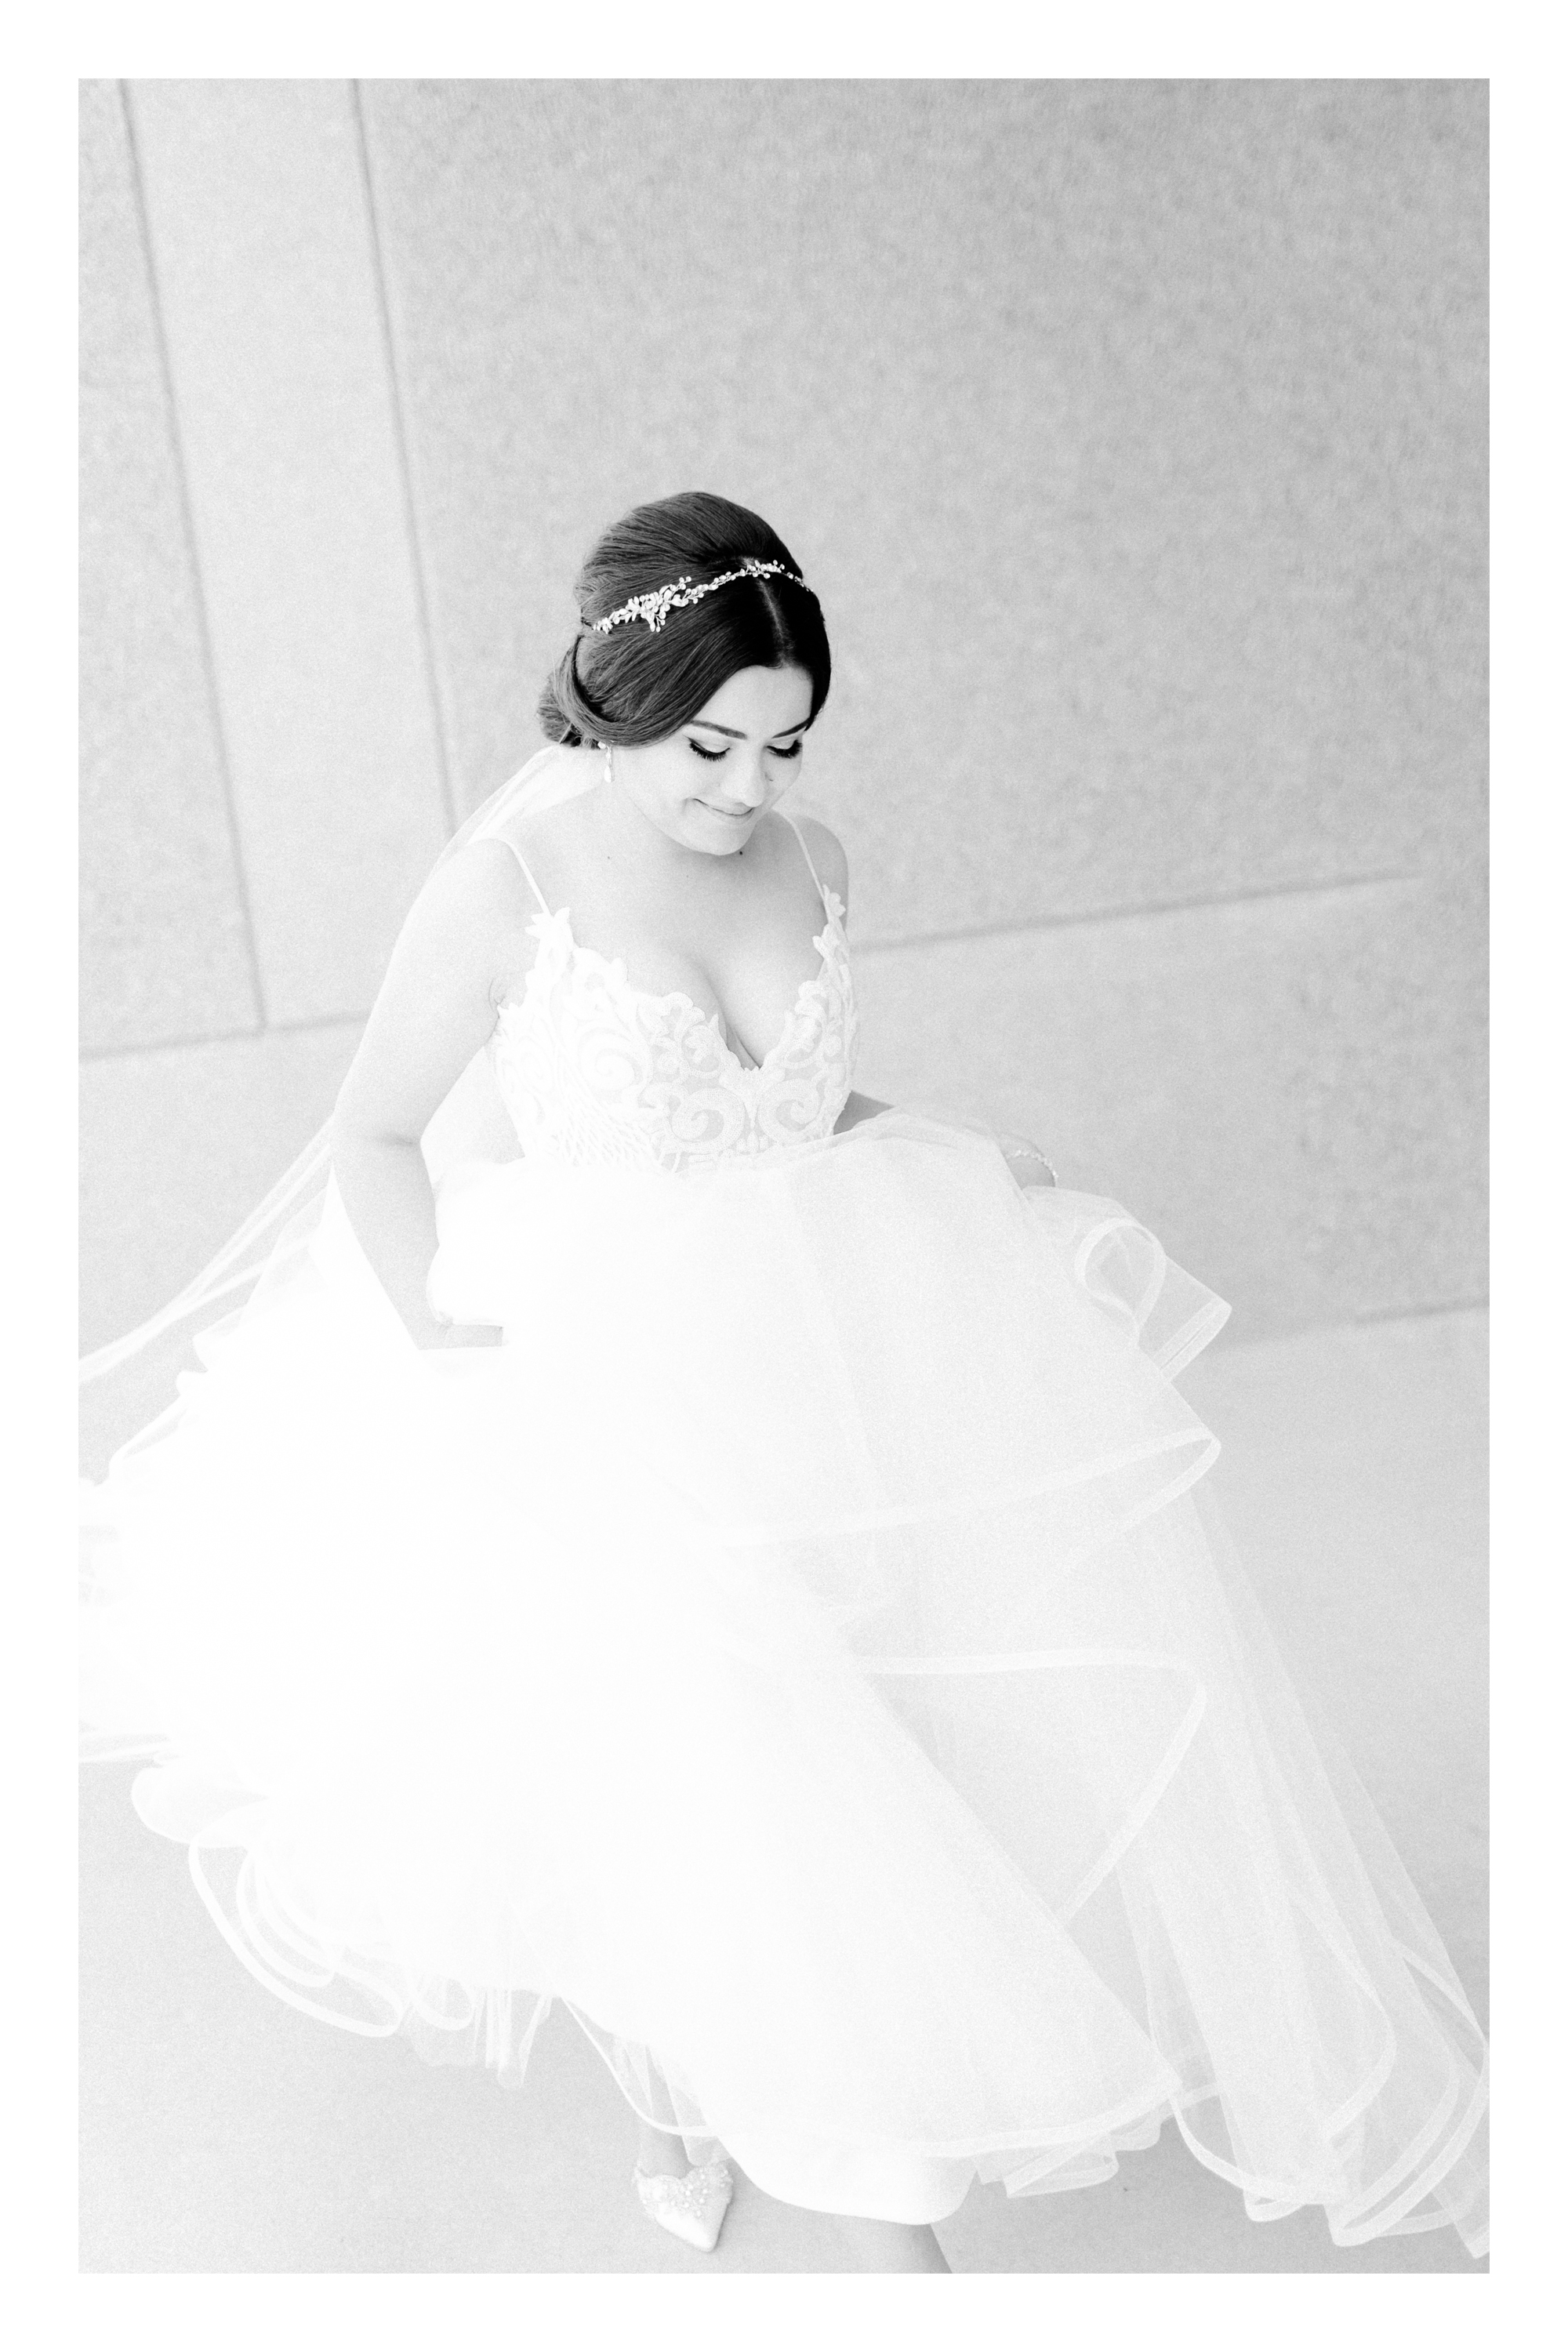 FULL-SERVICE WEDDING COLLECTIONS BEGIN AT $2499 - INCLUDES:8 Hour CoverageComplimentary Engagement Session10x10 CanvasDigital Files